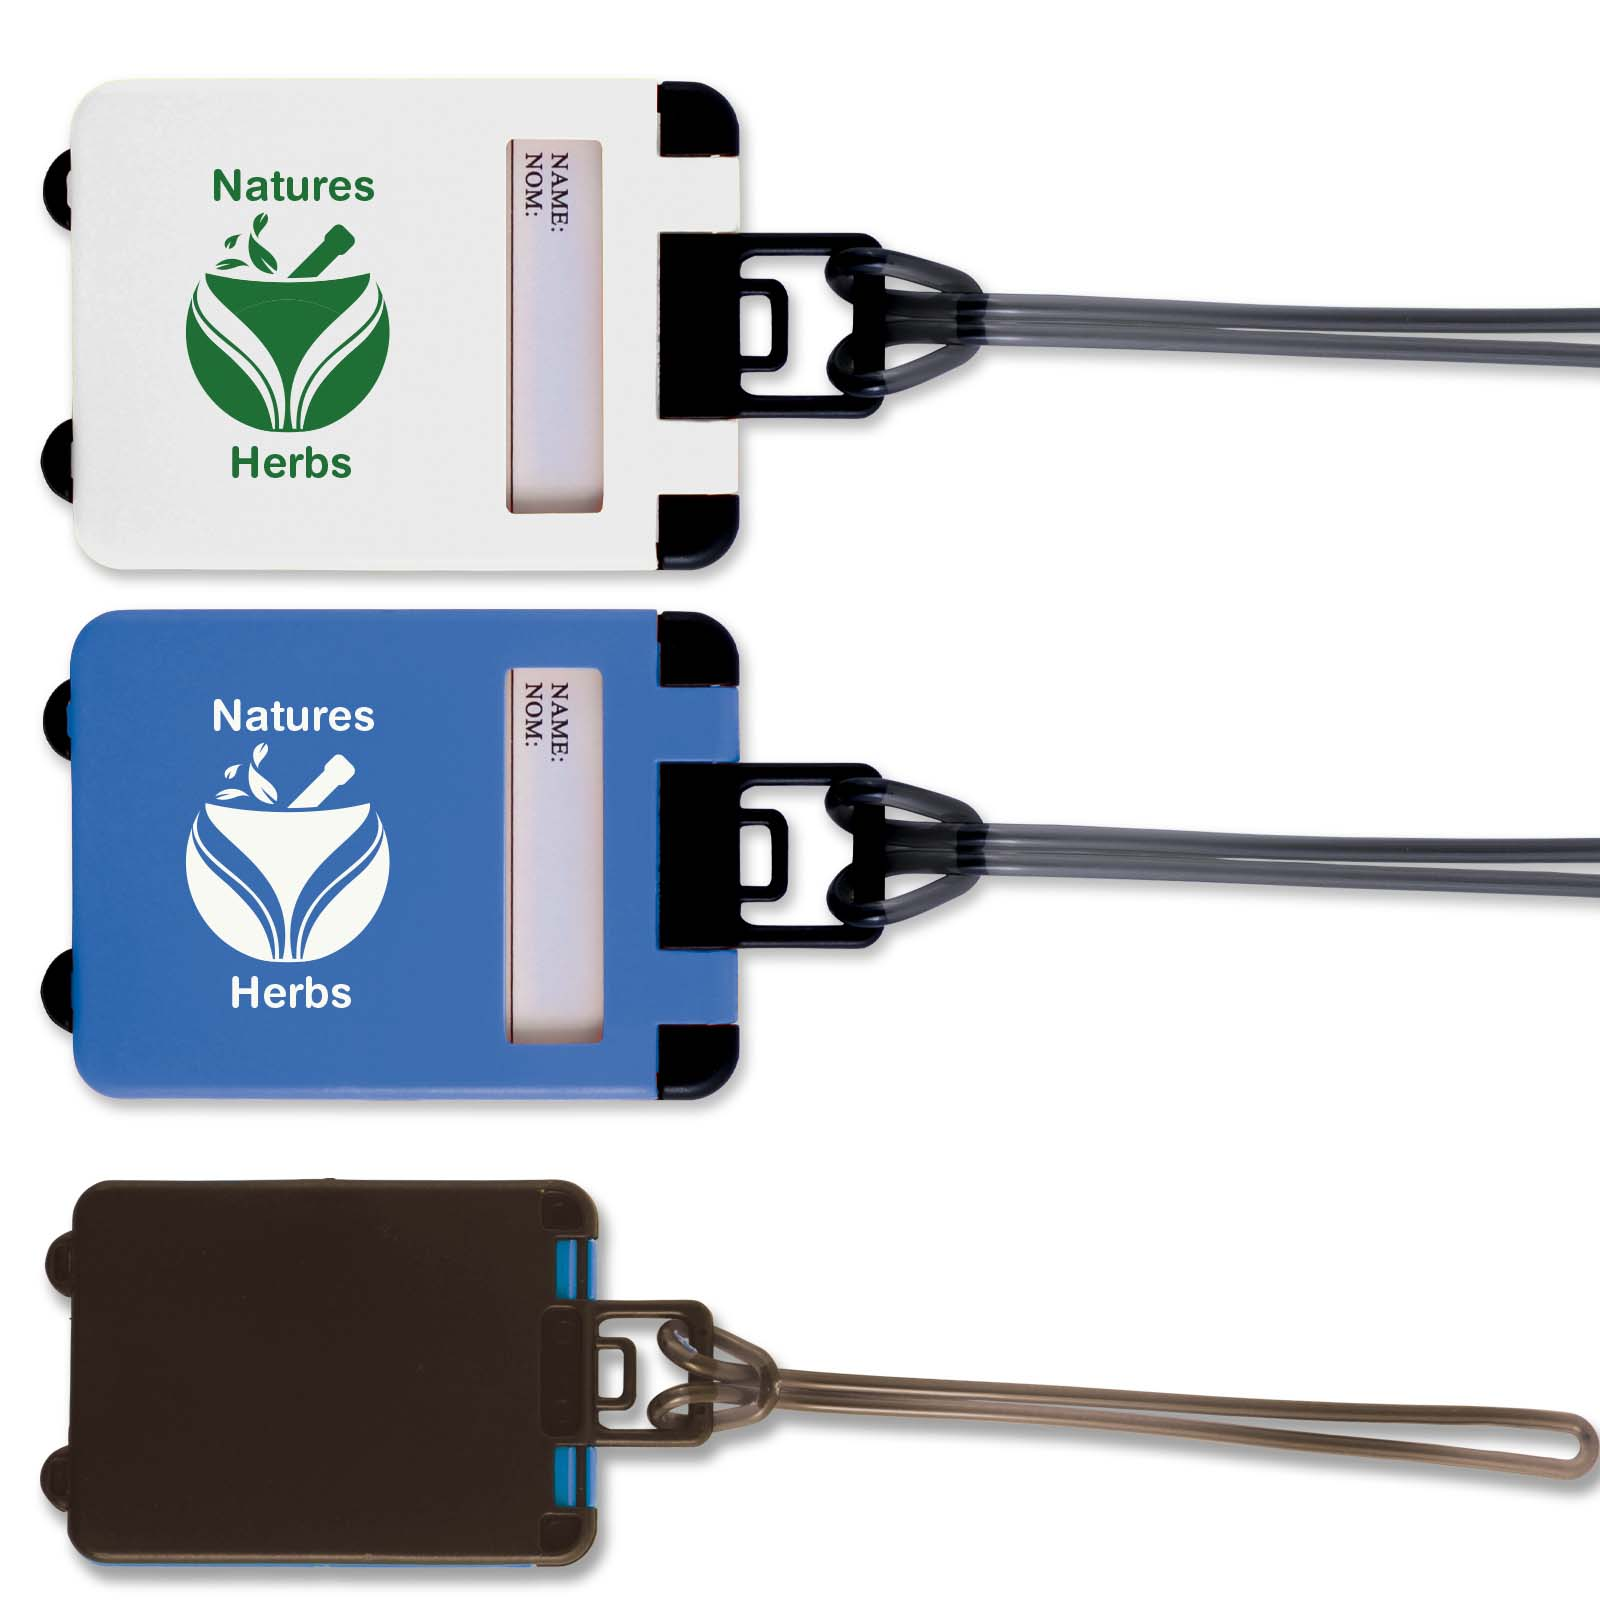 Suitcase Luggage Tag - Includes a 1 colour printed logo, From $0.97